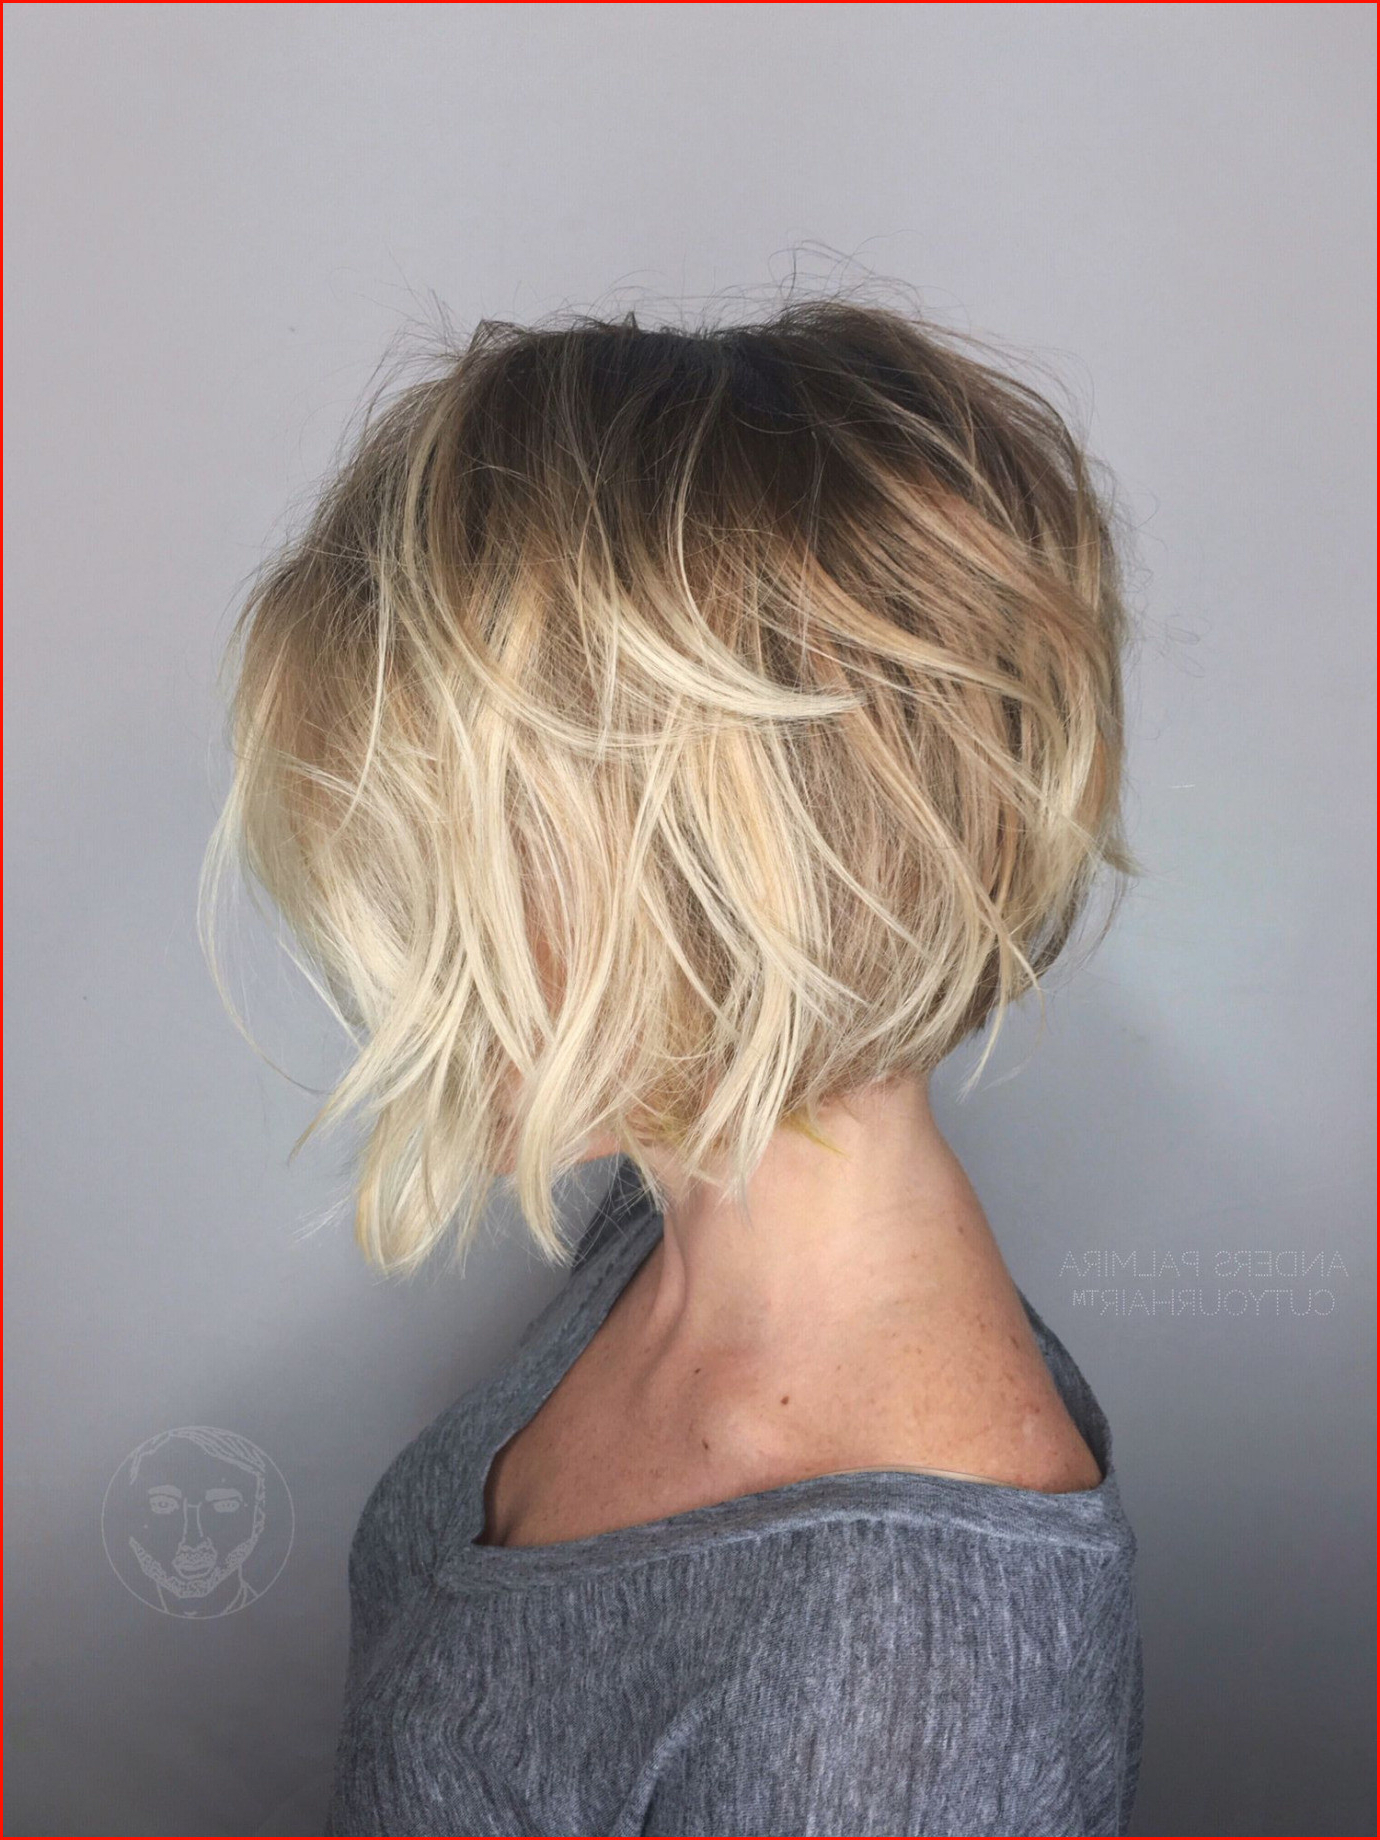 Bob Hairstyles Archives – Popshopdjs In Preferred Short To Medium Bob Hairstyles (View 17 of 21)